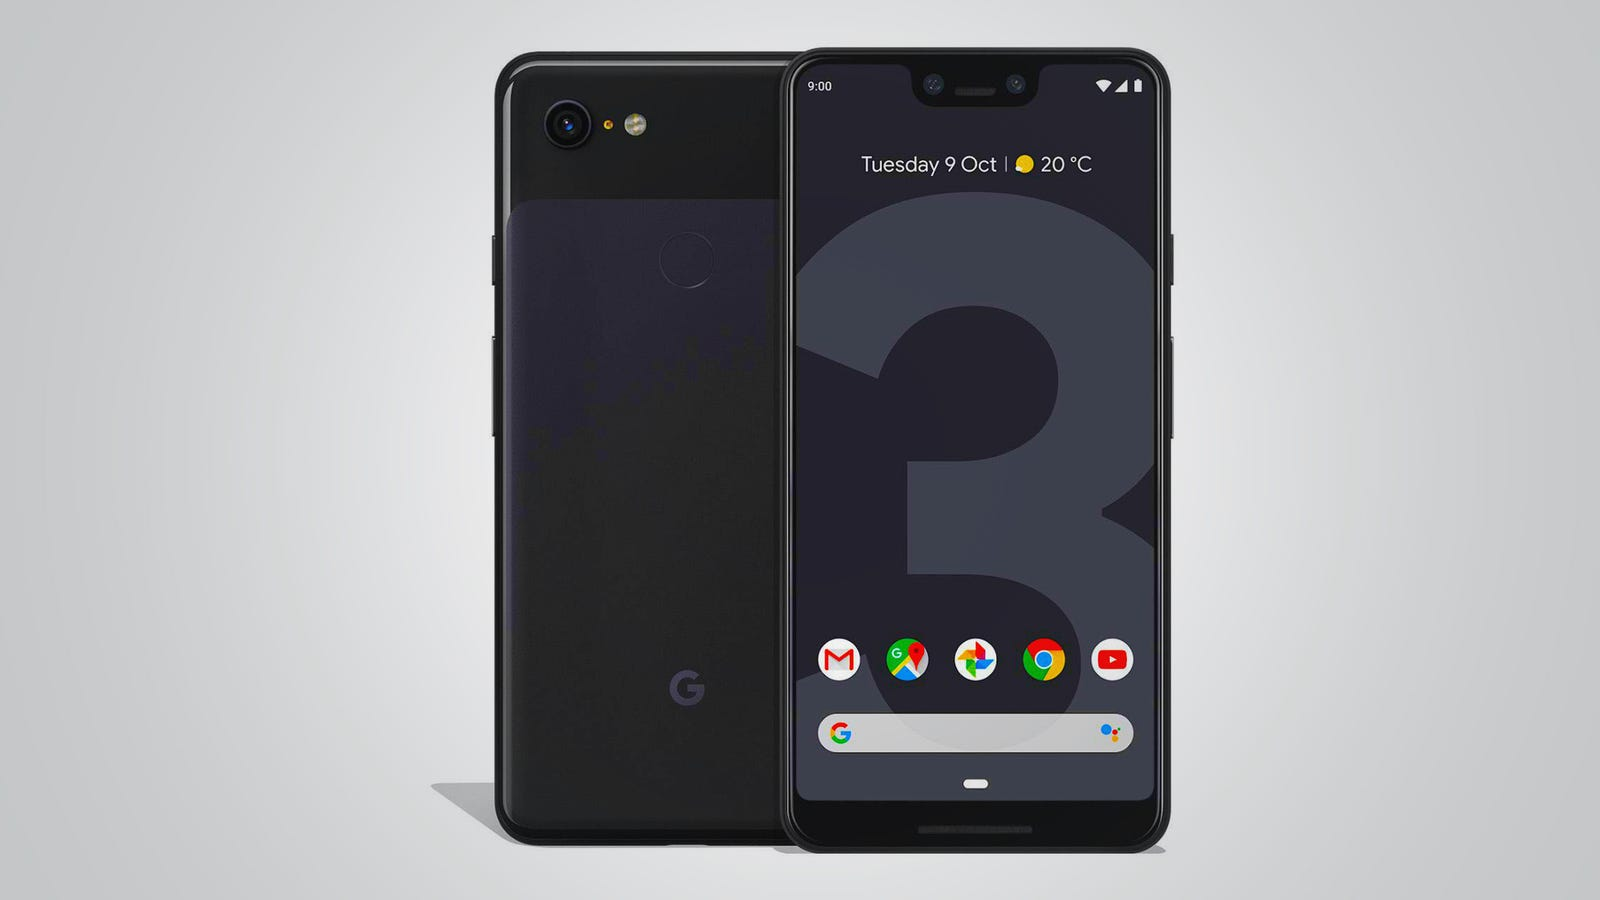 Get $350 Off an Unlocked Pixel 3 XL With This Best Buy Deal